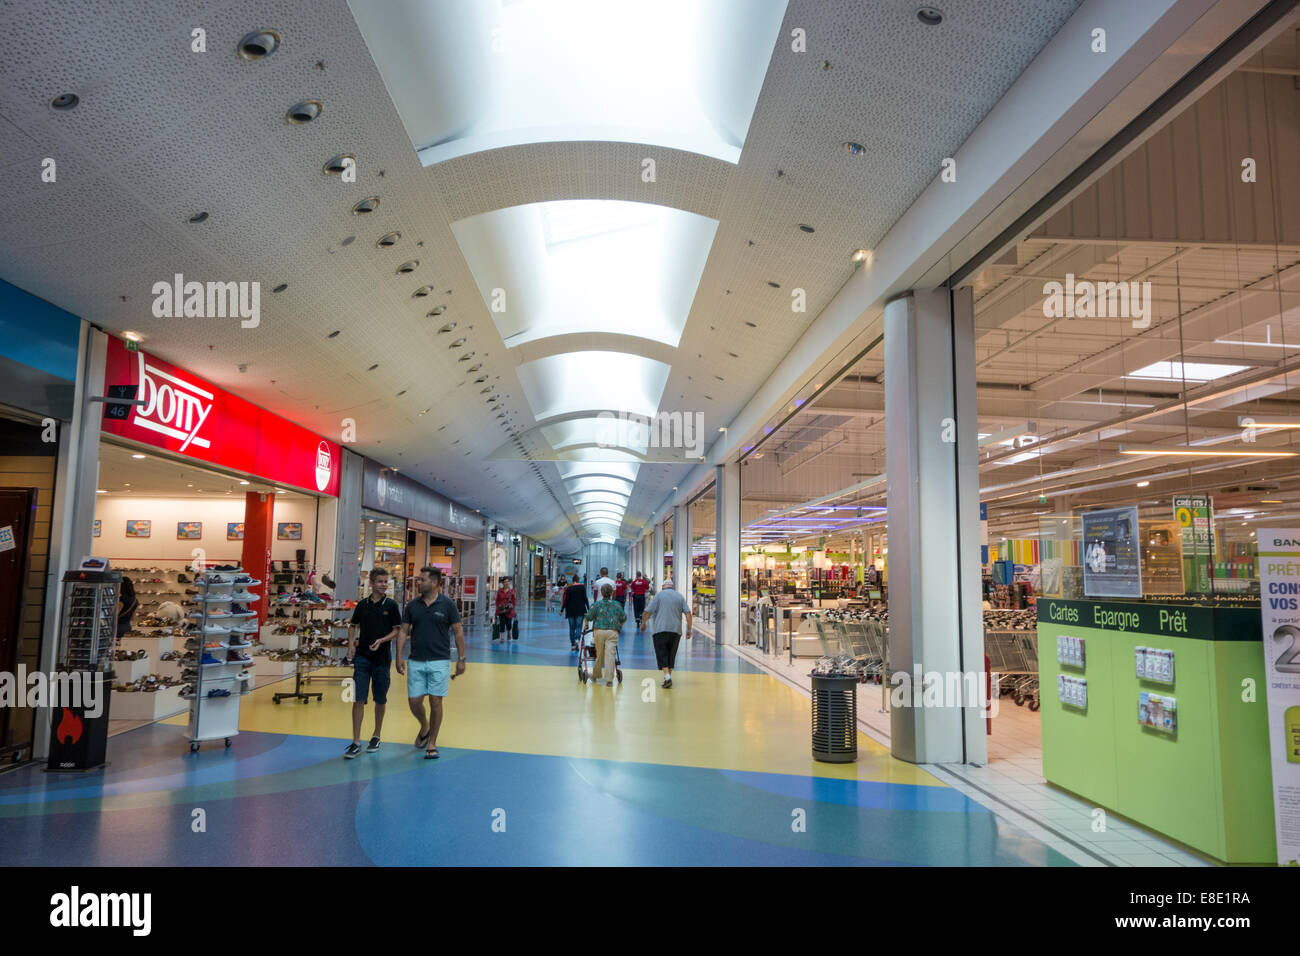 geant casino supermarket in shopping mall in montpellier herault stock photo royalty free